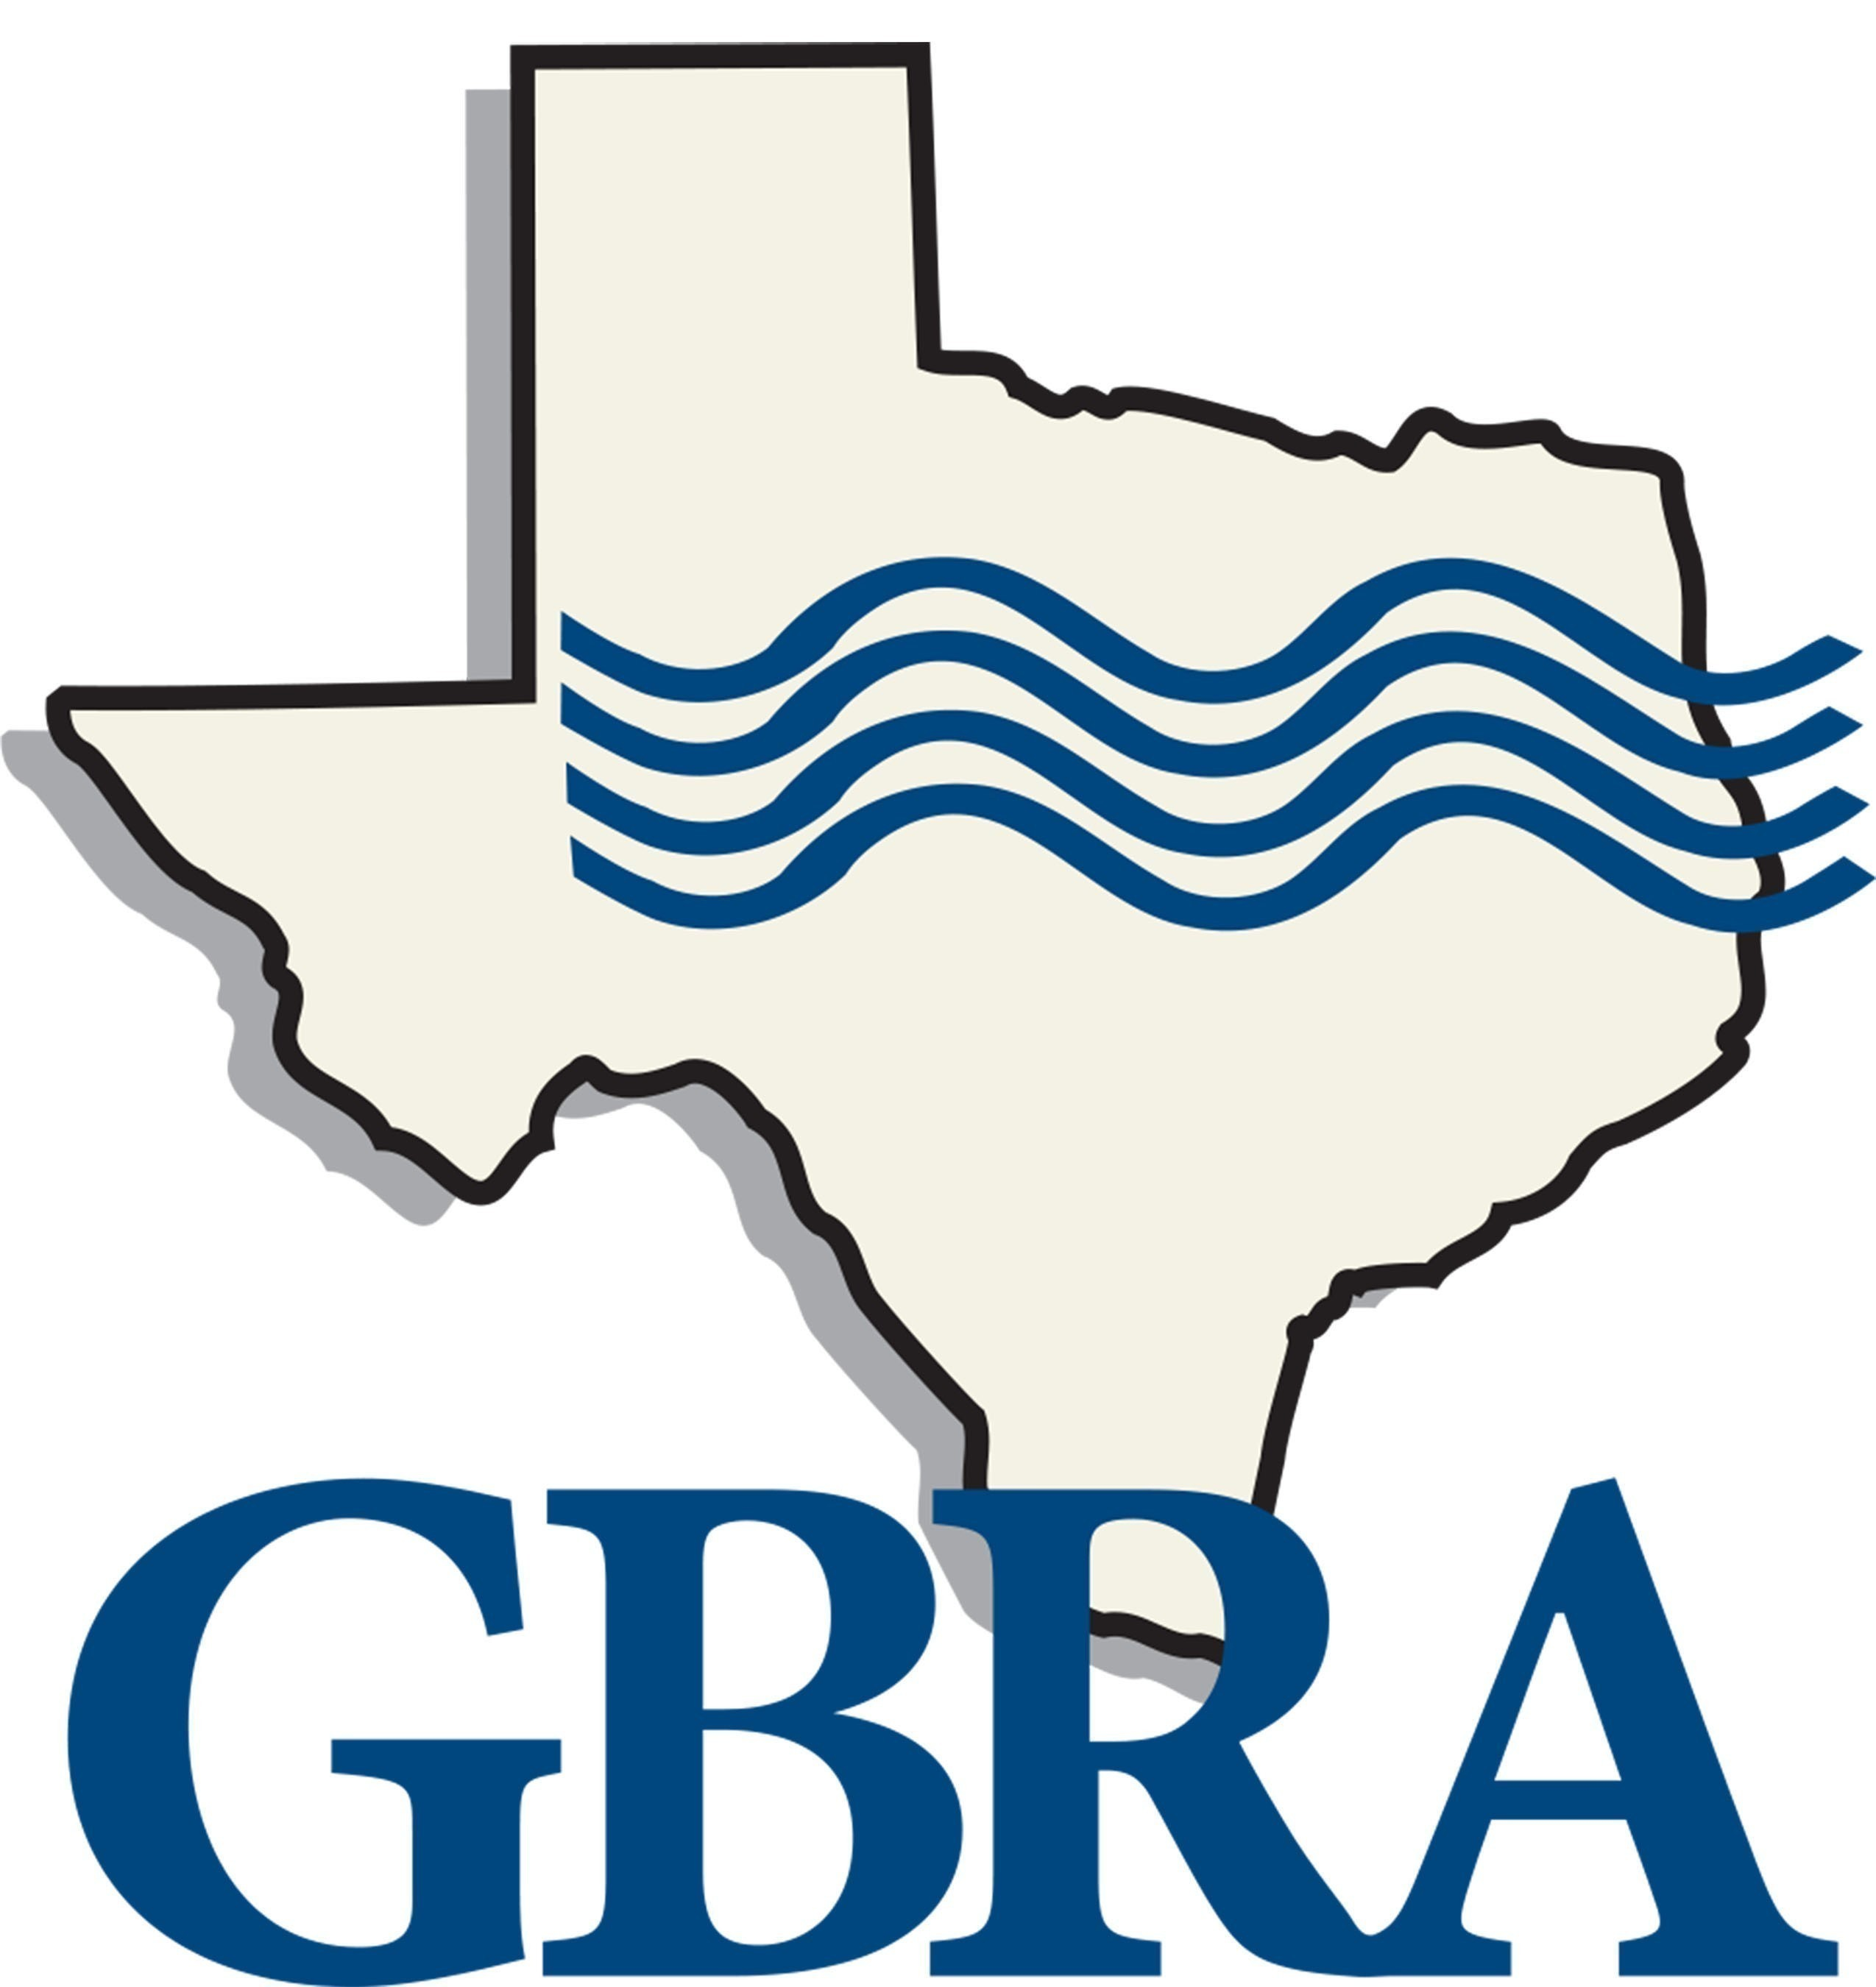 Guadalupe-Blanco River Authority (GBRA). (PRNewsFoto/Guadalupe-Blanco River Authority) (PRNewsFoto/Guadalupe-Blanco River Authority)